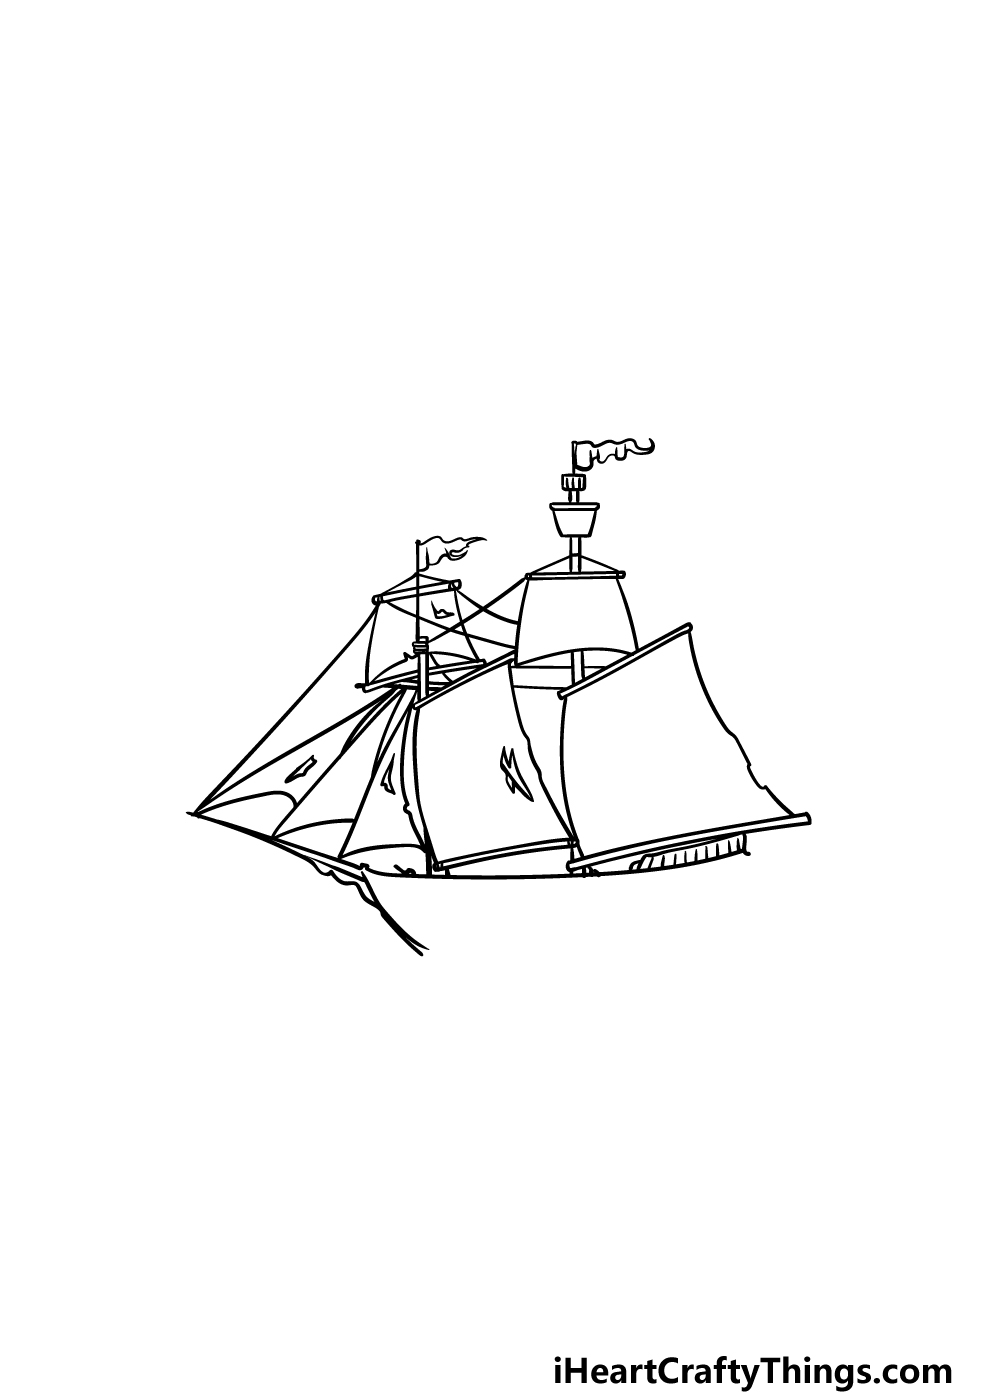 drawing a pirate ship step 4